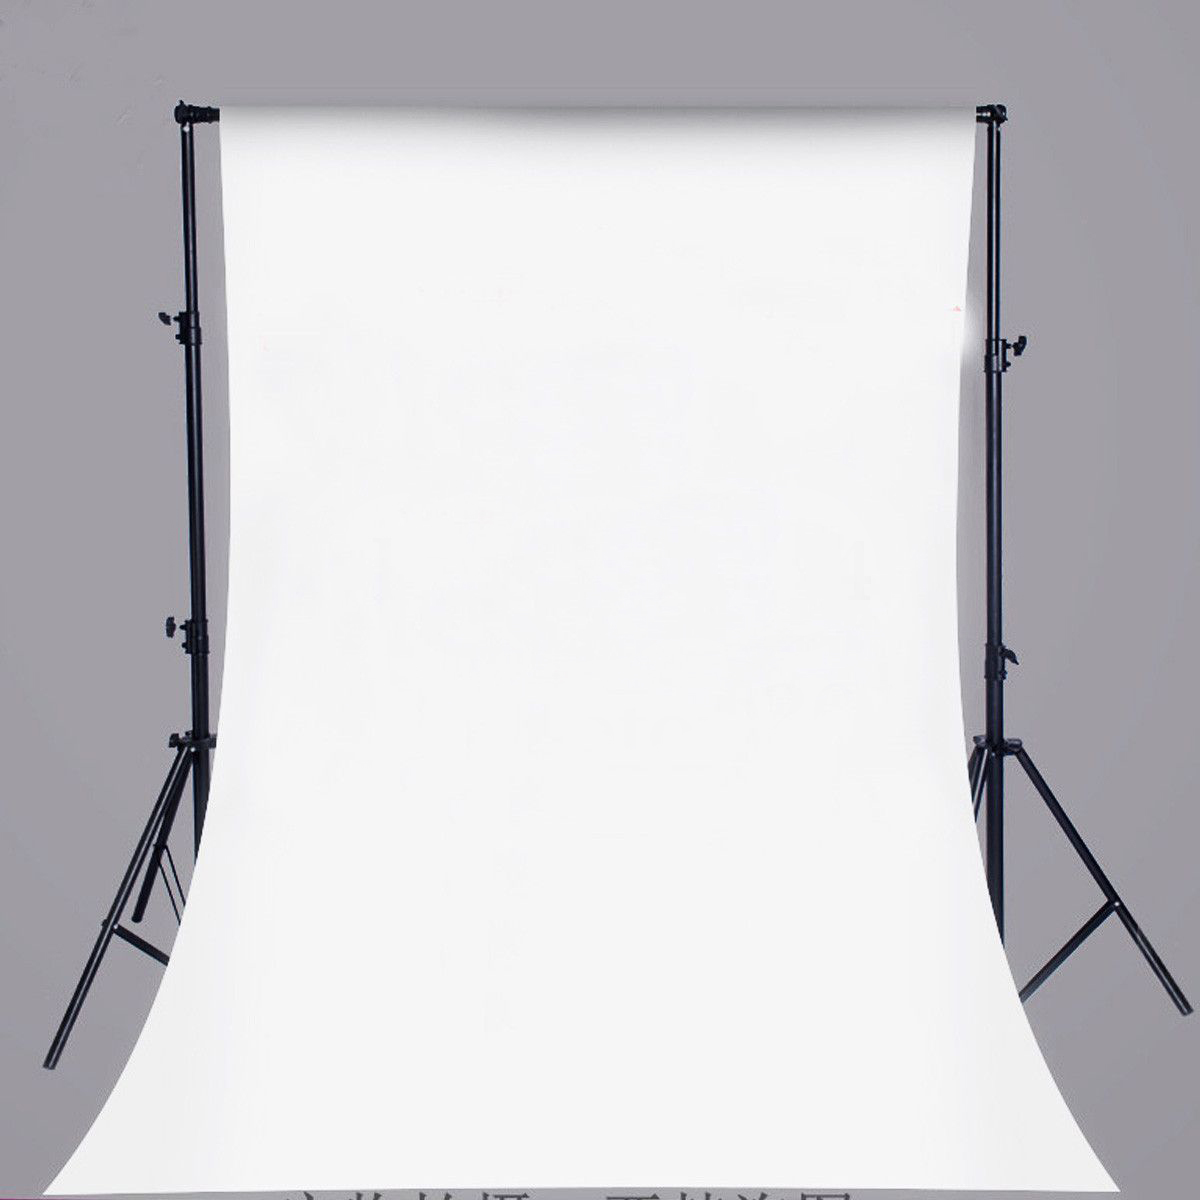 1.5*2.1cm 5*7FT Cloth White Photography Backdrop Digital Screen For Studio Camera Photograph Outdoor Photography <br><br>Aliexpress